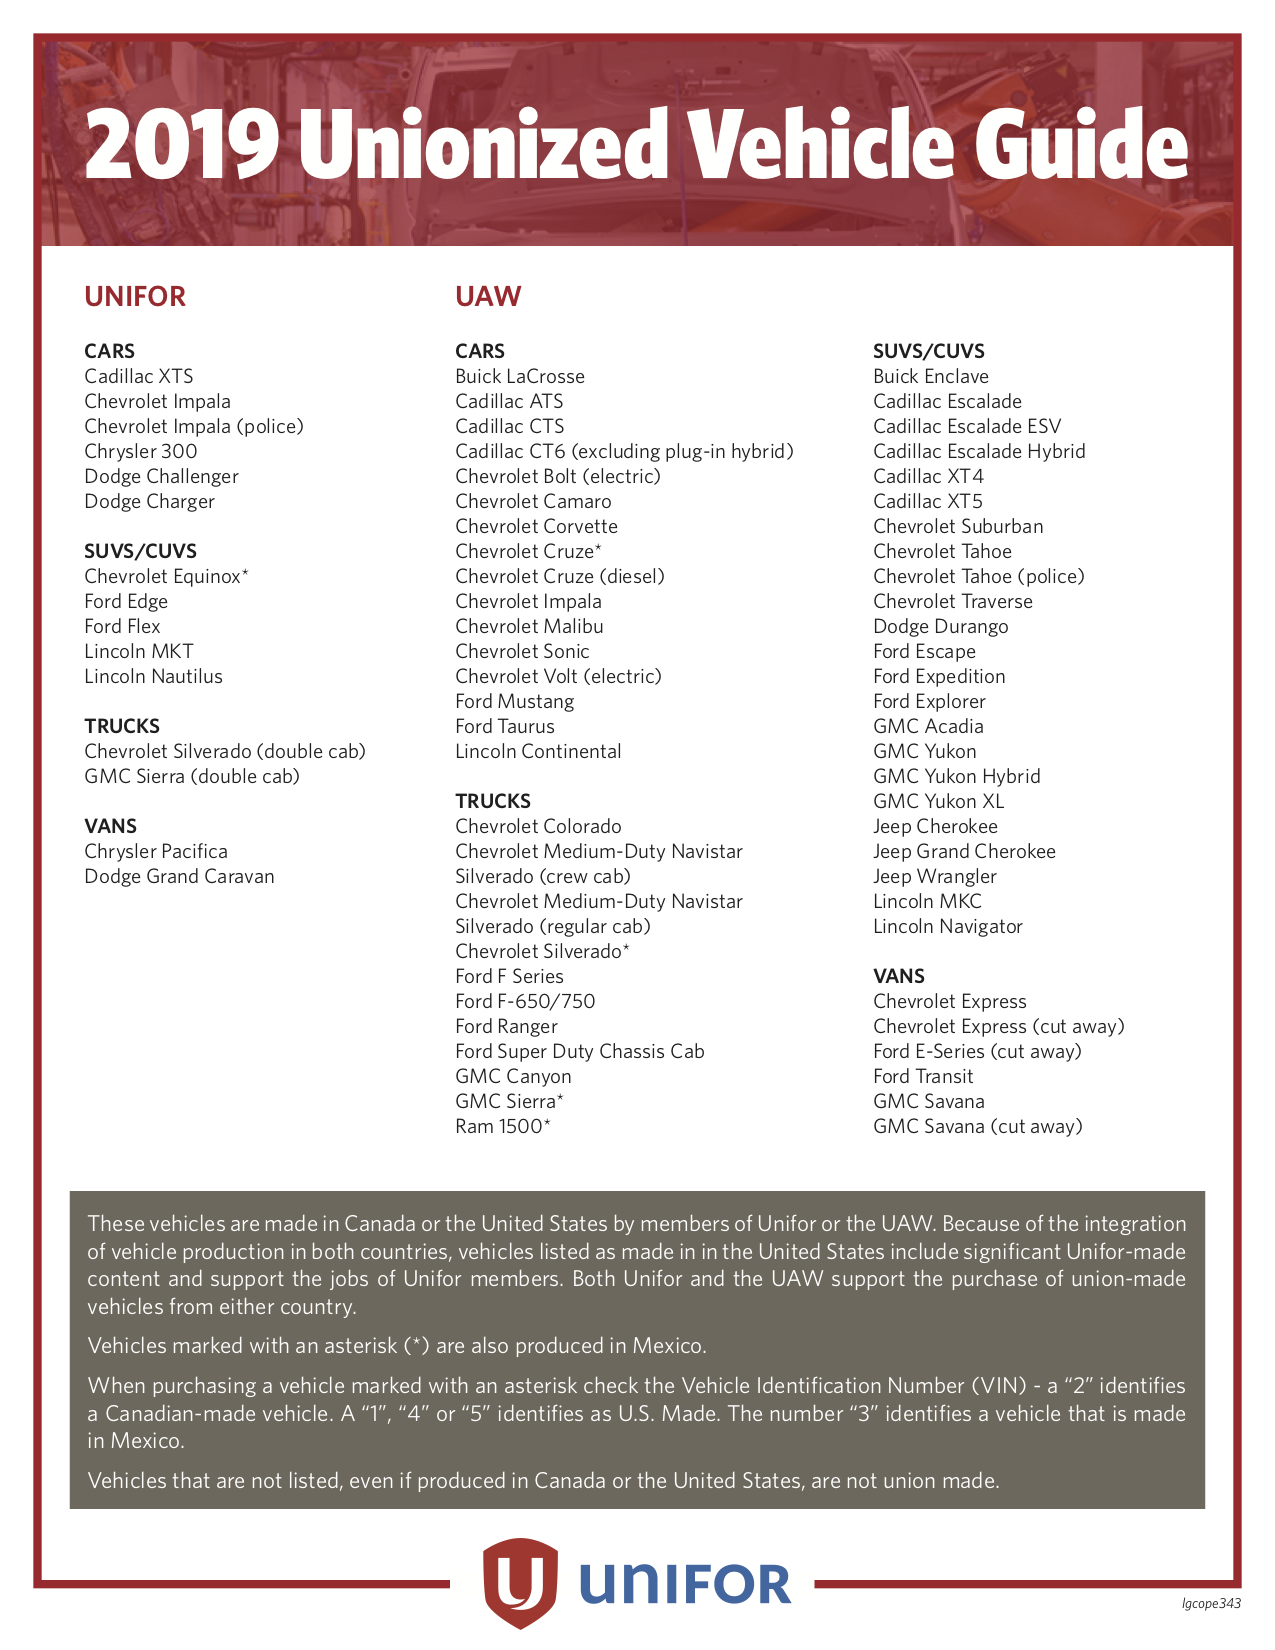 2019_Approved_Vehicle_List_Updated_Feb_2019.png